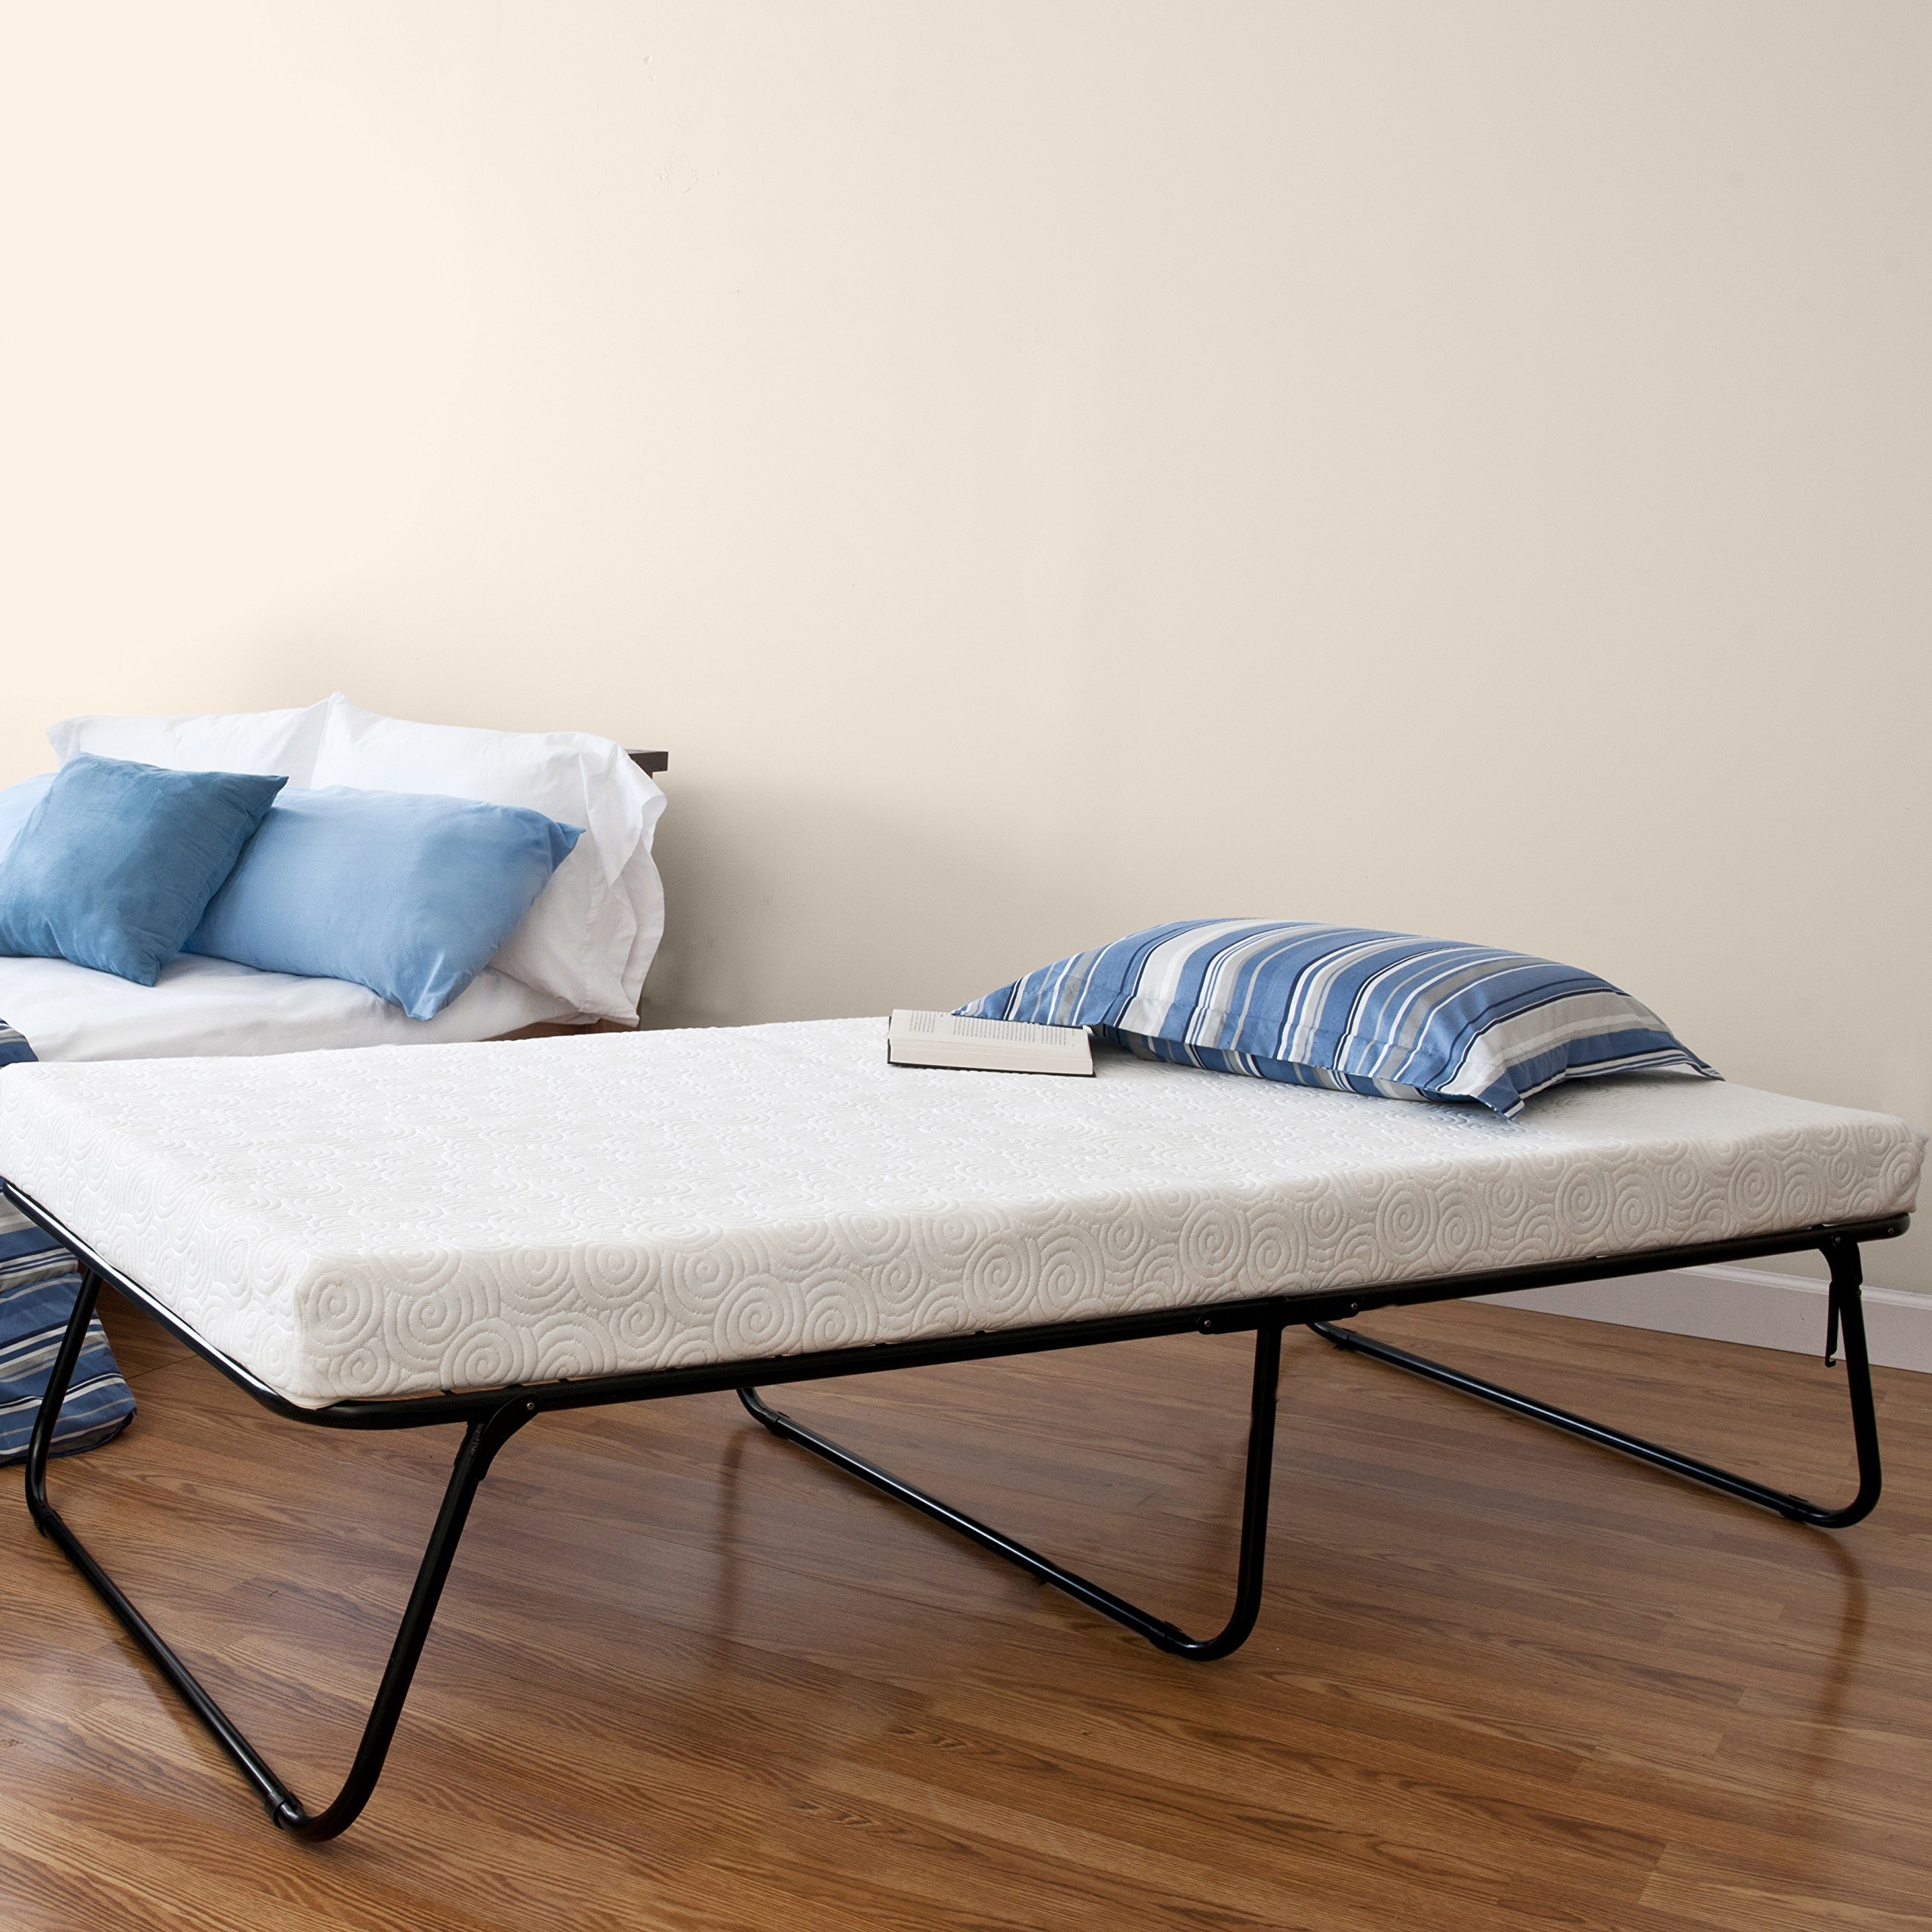 bed be revolution with mattress itm folding new sprung jay tex single j guest pocket